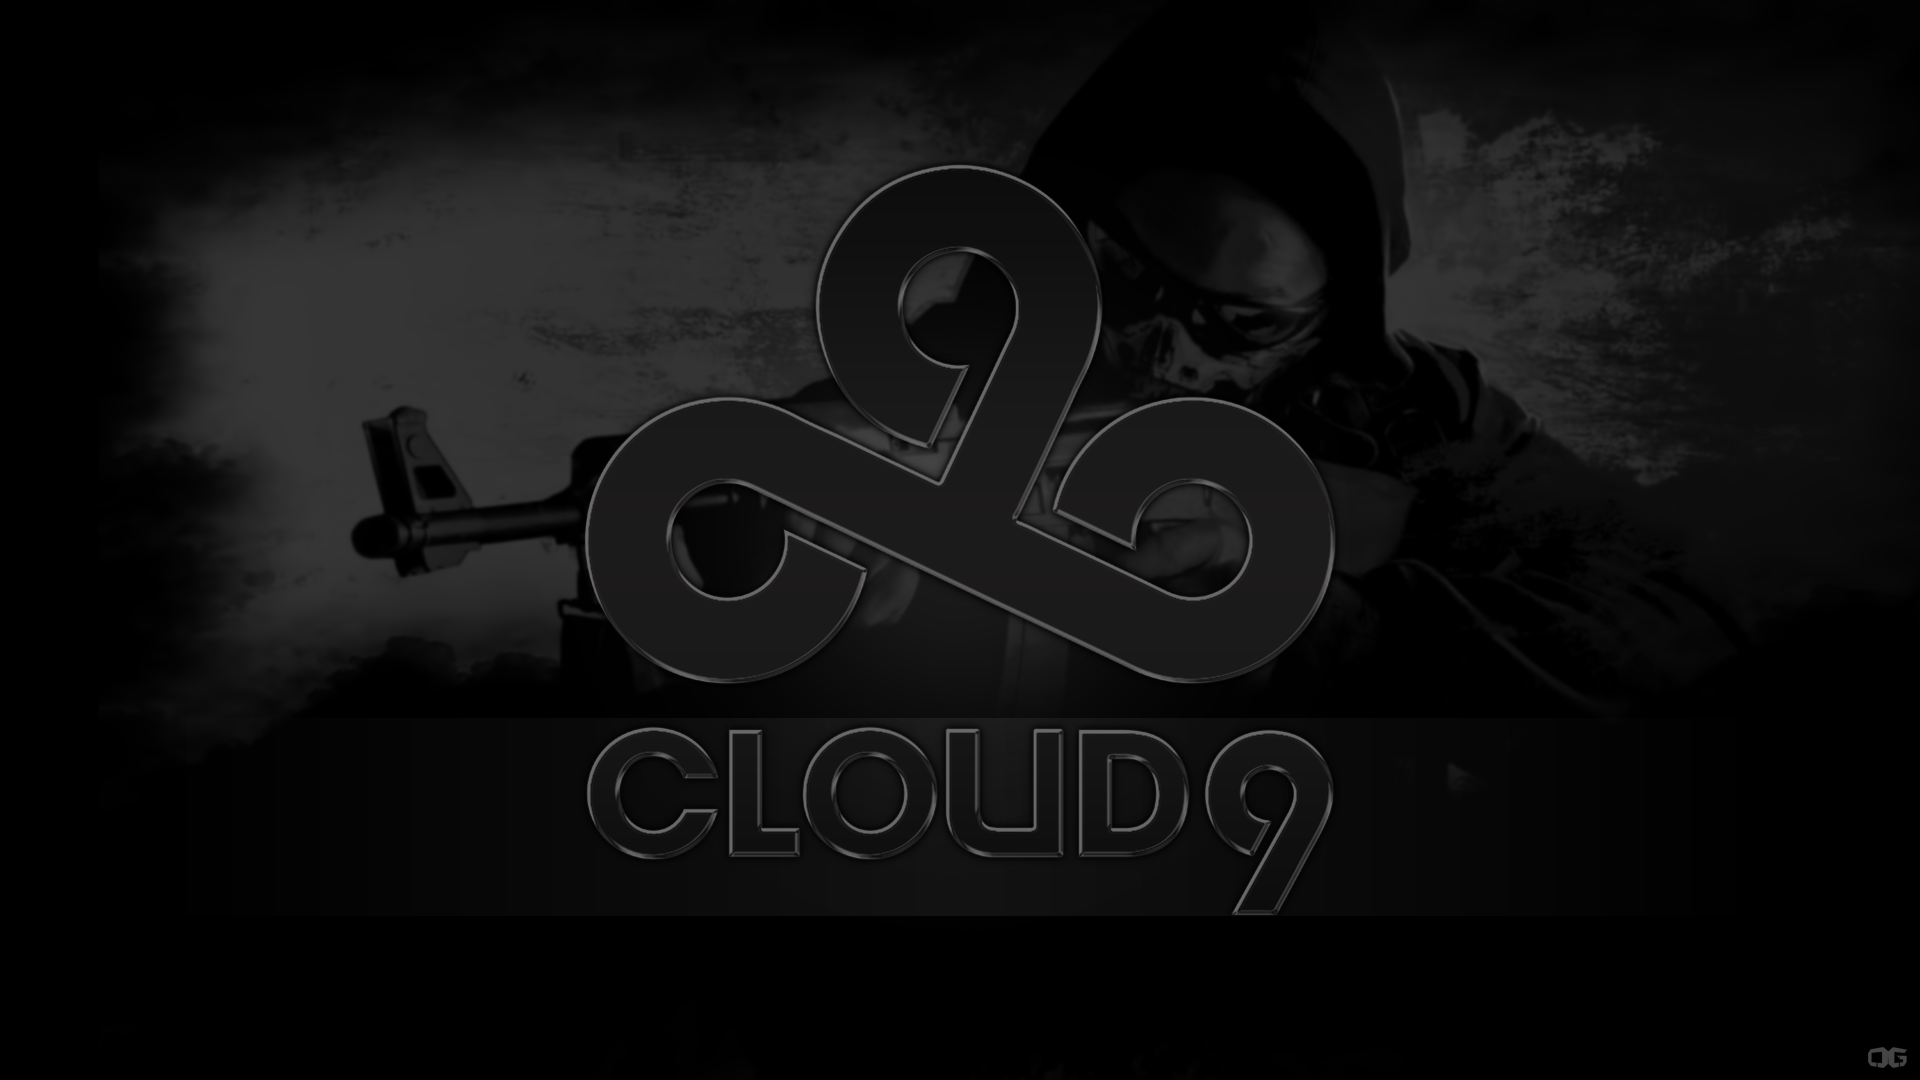 Cloud9 Dark